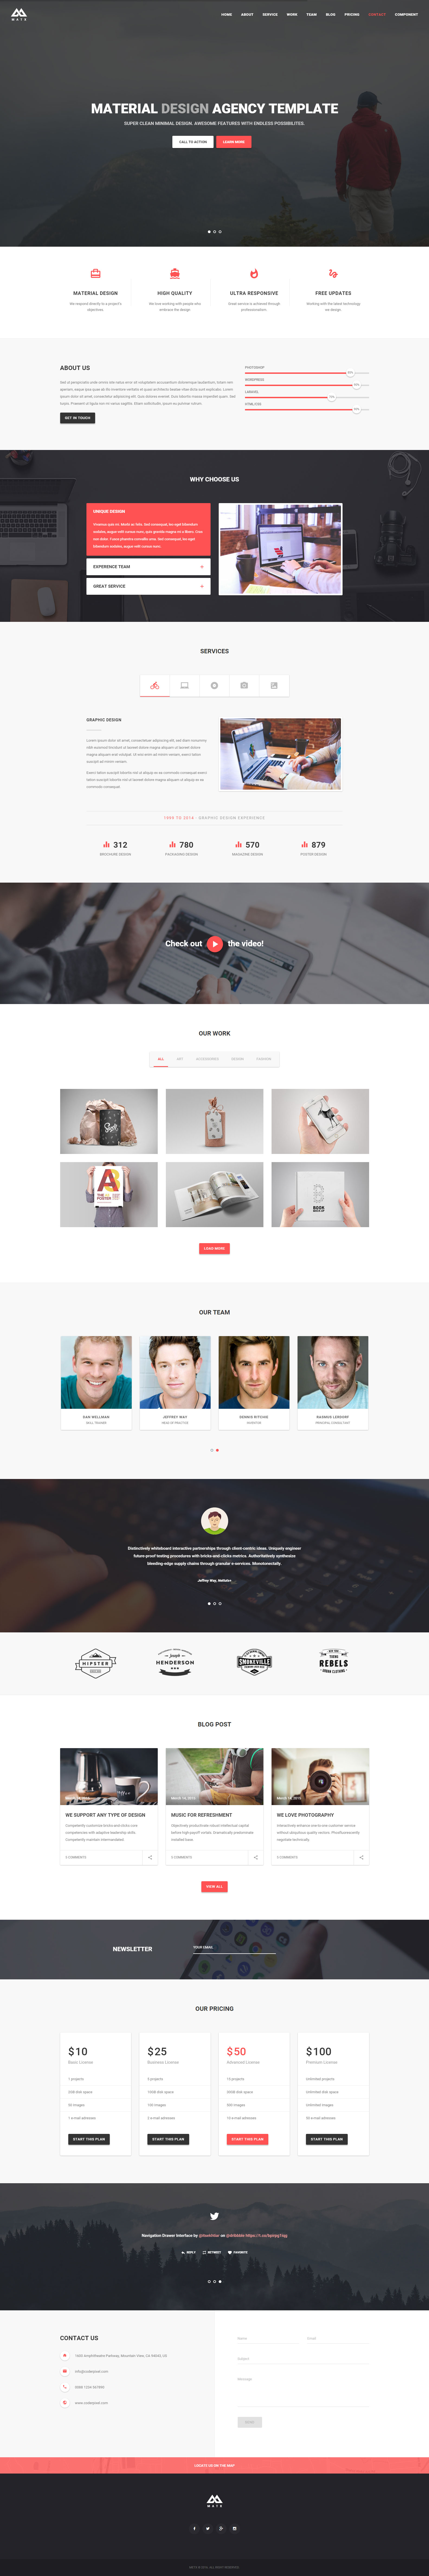 MATX - Material Design Agency Theme by coderpixel | ThemeForest